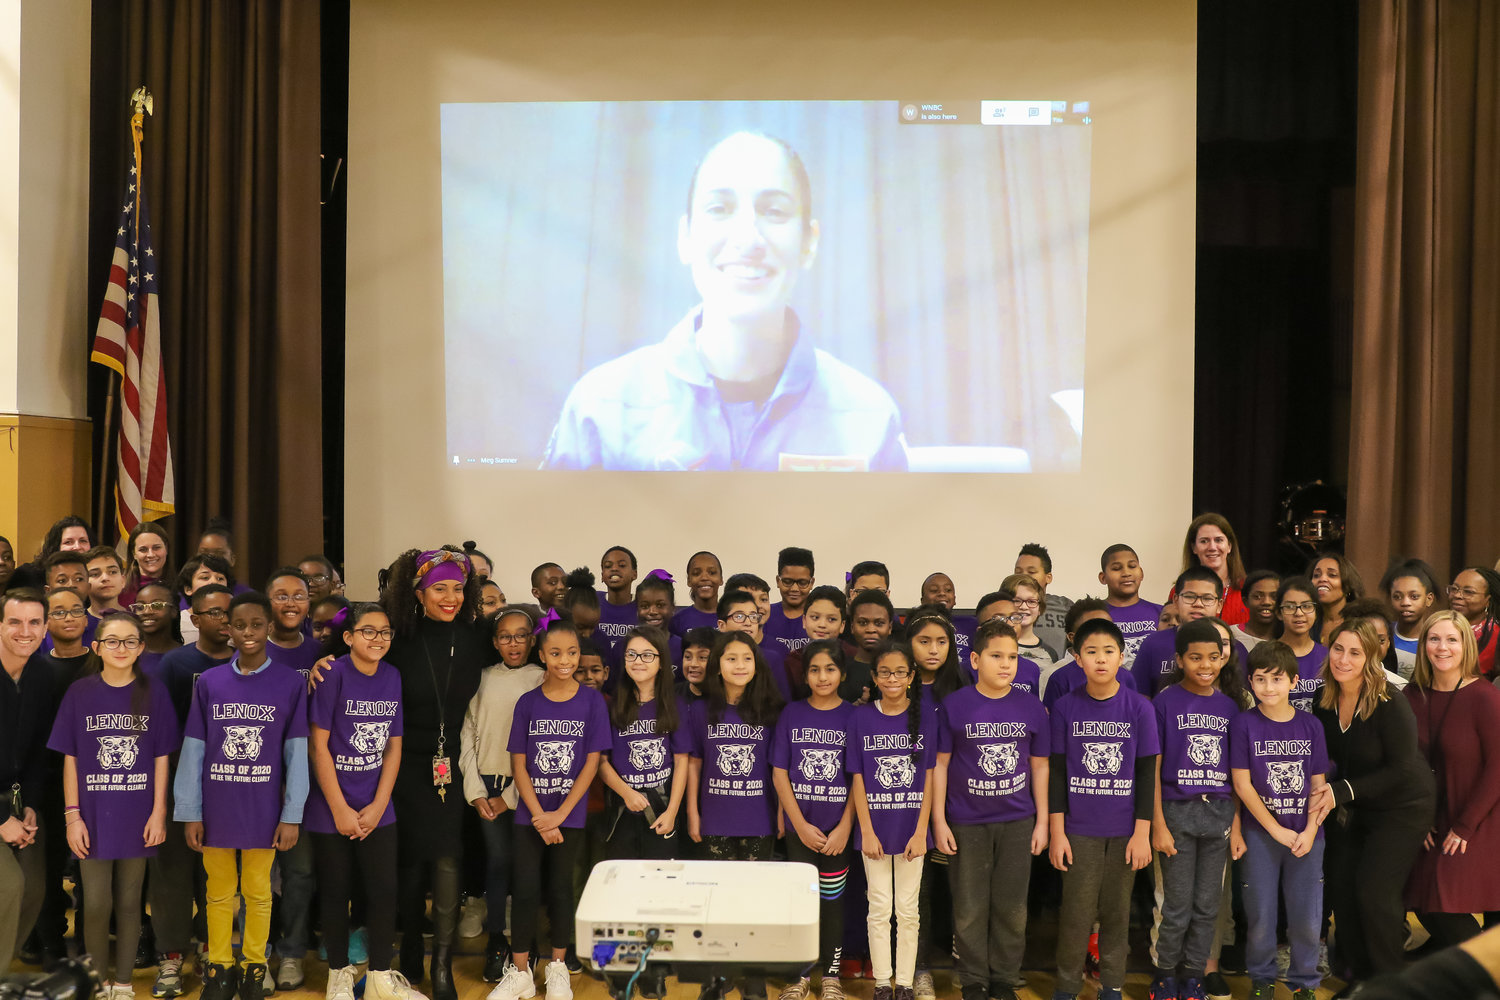 Lenox Elementary School fifth-graders and faculty chatted with Moghbeli via livestream after she graduated from NASA's Artemis program on Jan 10.